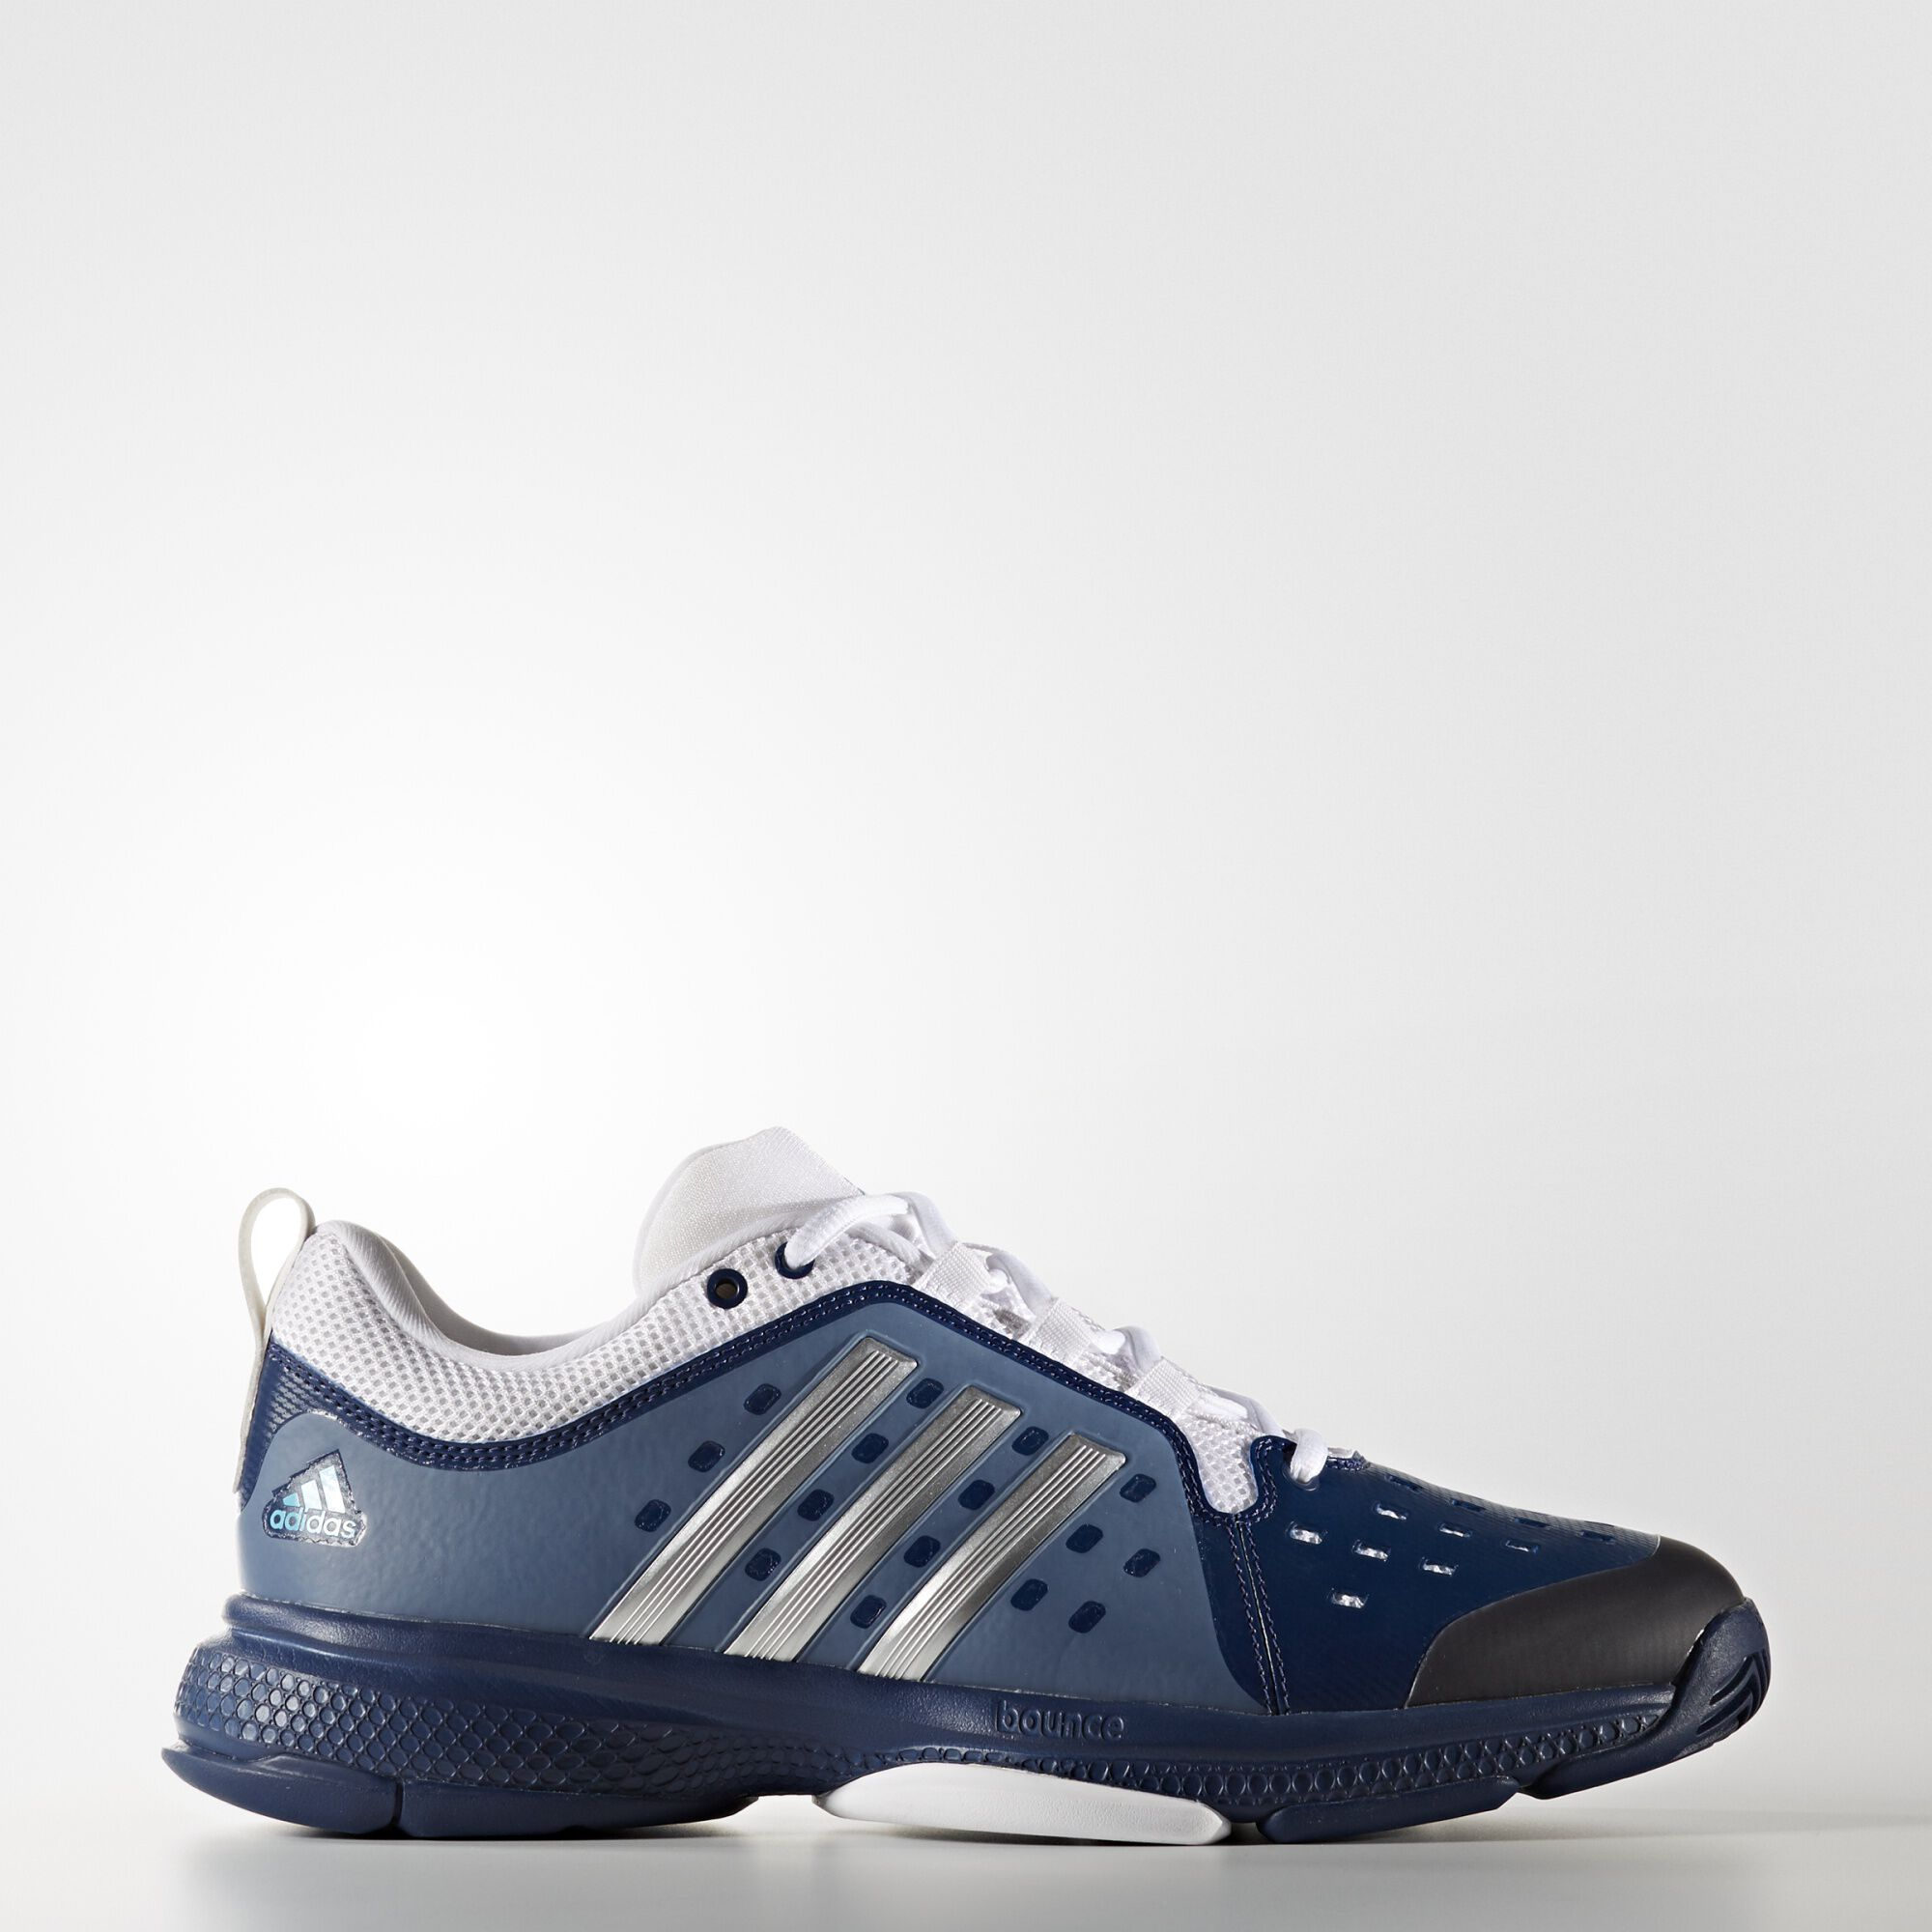 adidas barricade 6.0 london womens shoes review